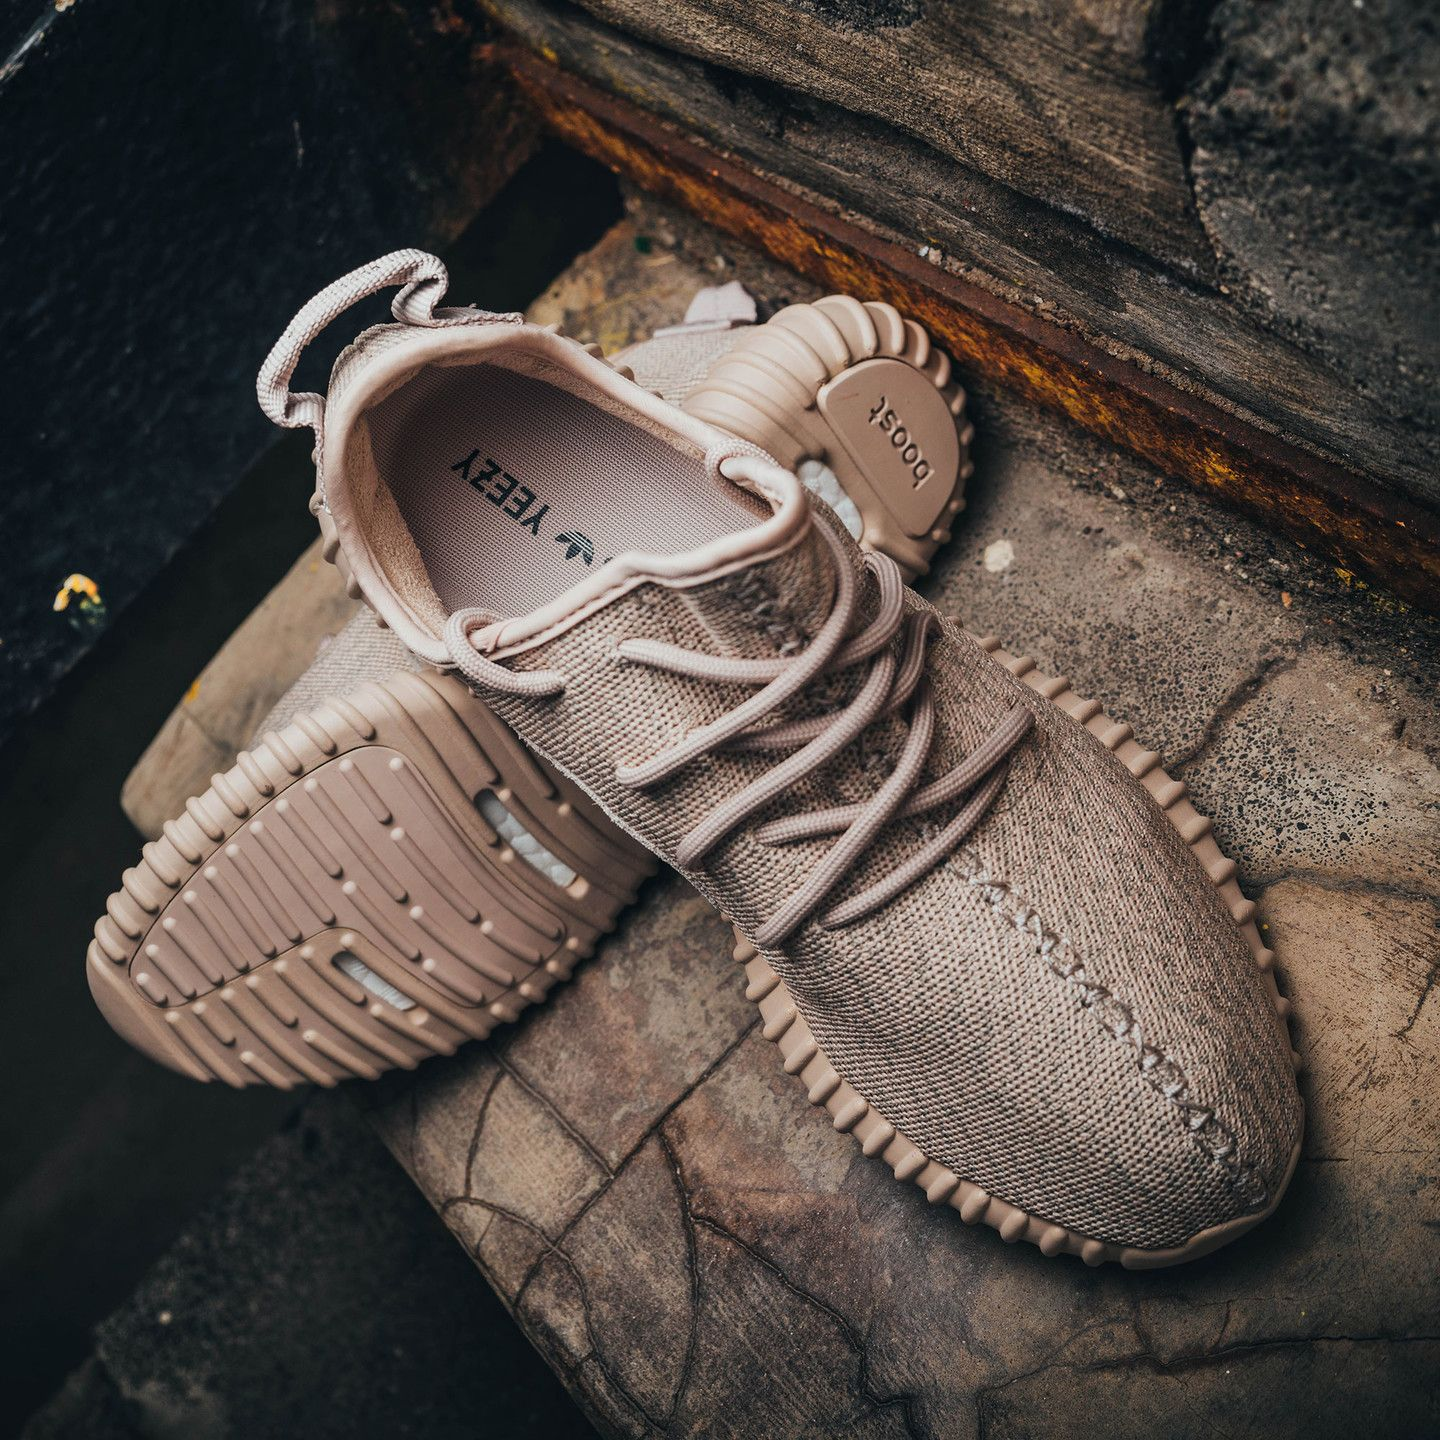 outlet store 147f8 249c1 Adidas Yeezy Boost 350 Light Stone   Oxford Tan AQ2661